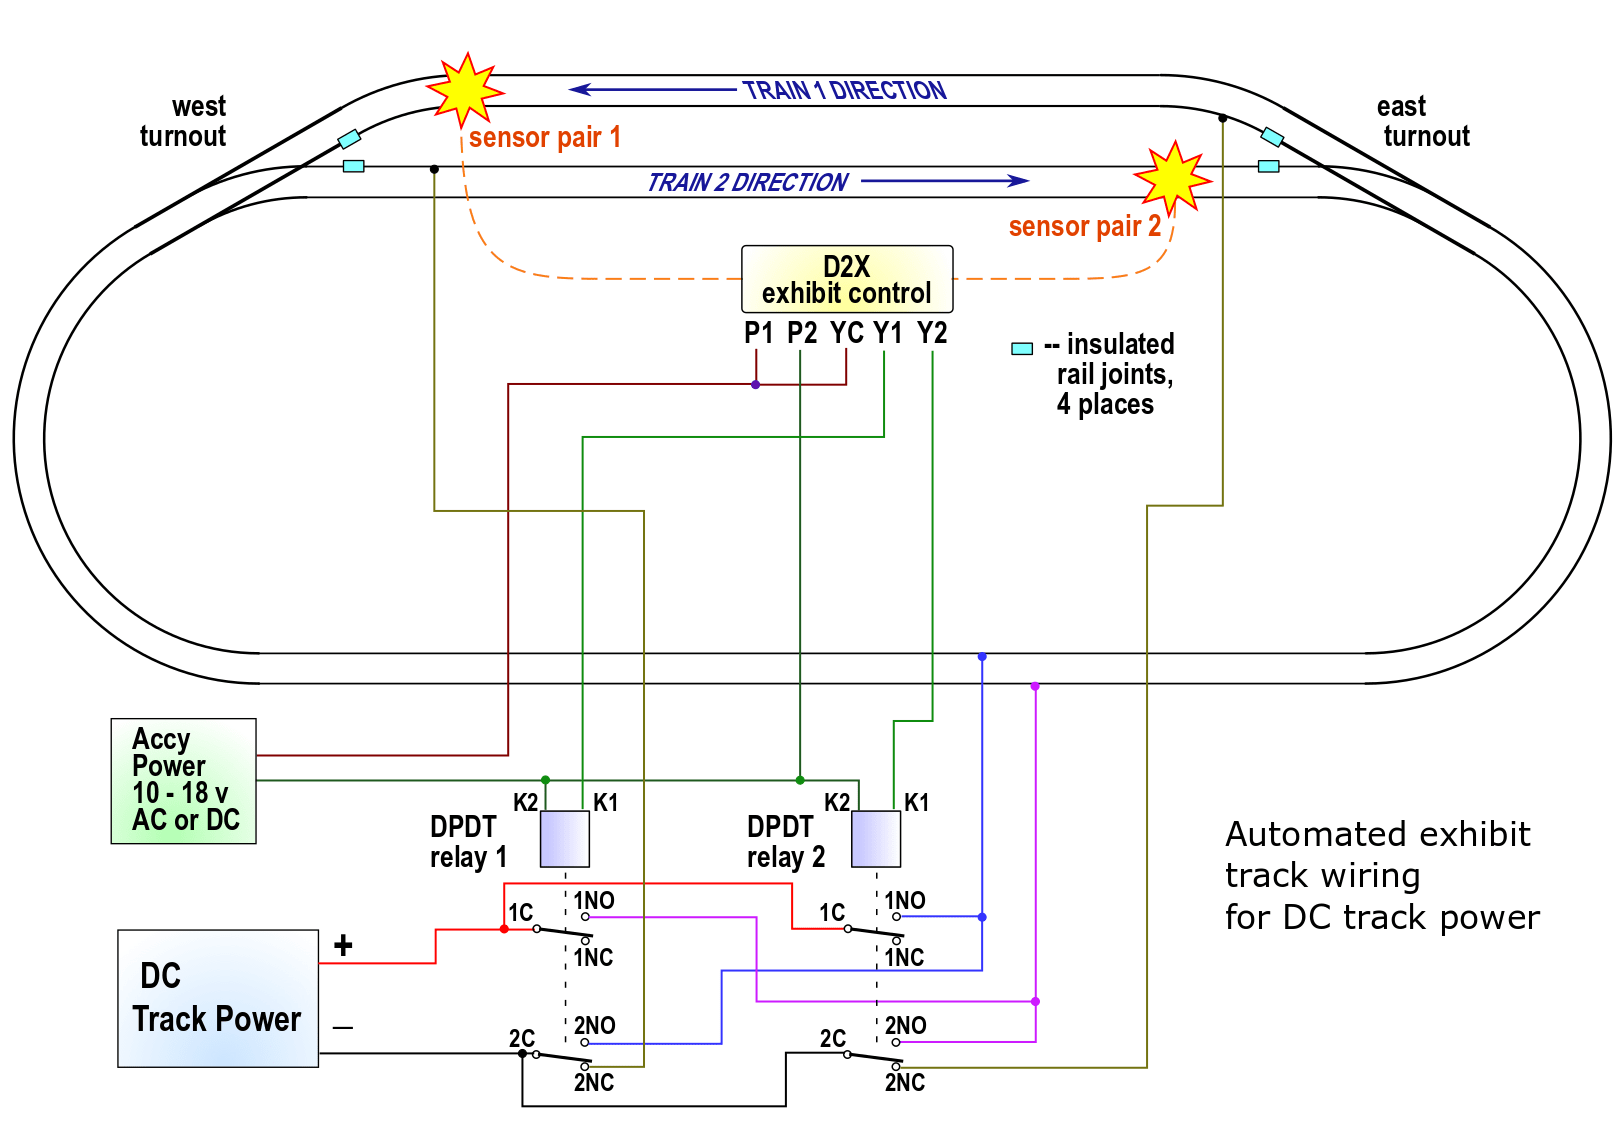 loop wiring diagram or schematic model railroad automatic two train exhibit controller